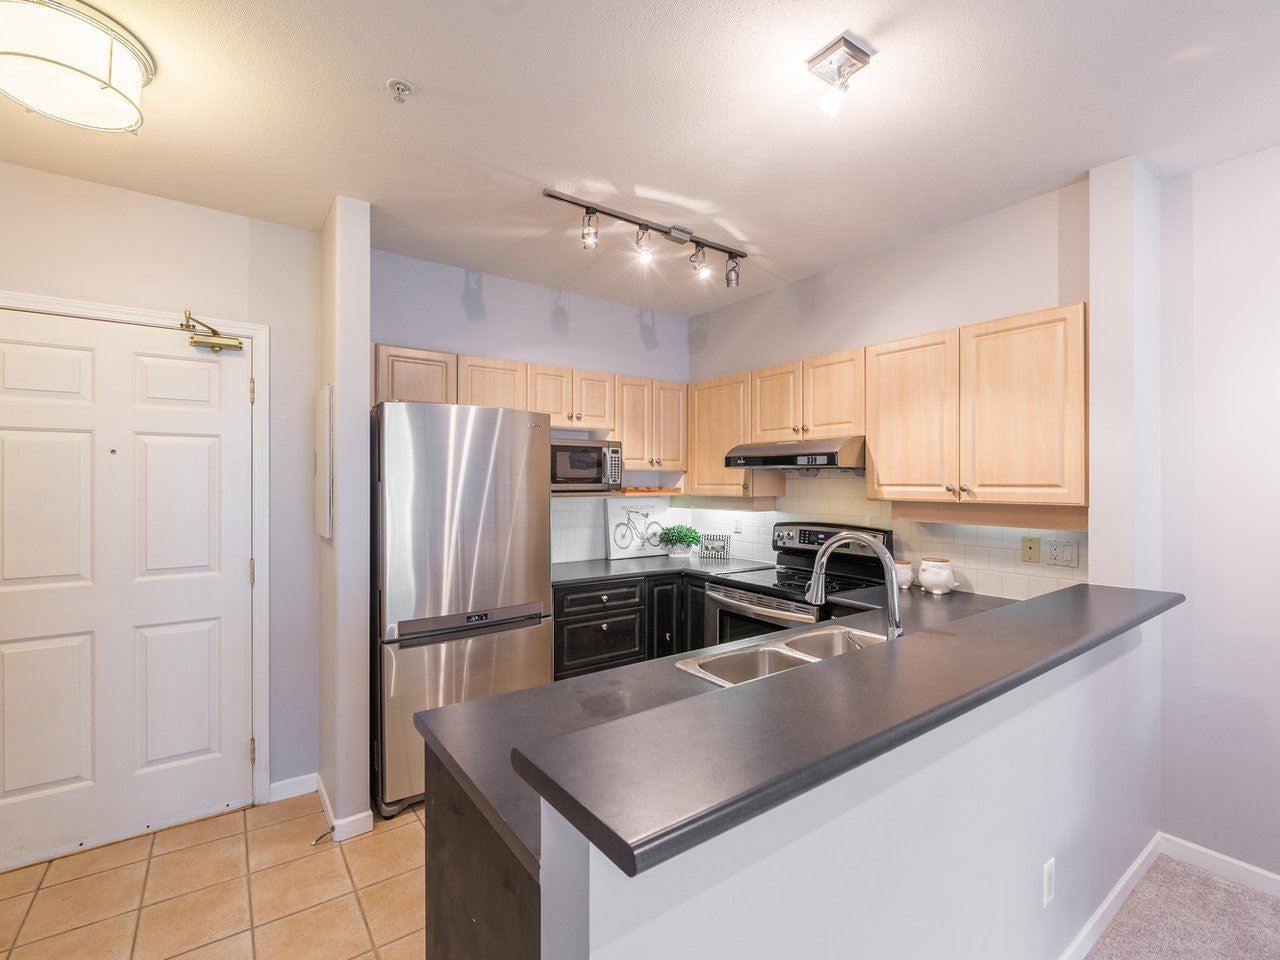 412 3629 DEERCREST DRIVE - Roche Point Apartment/Condo for sale, 1 Bedroom (R2525424) - #8